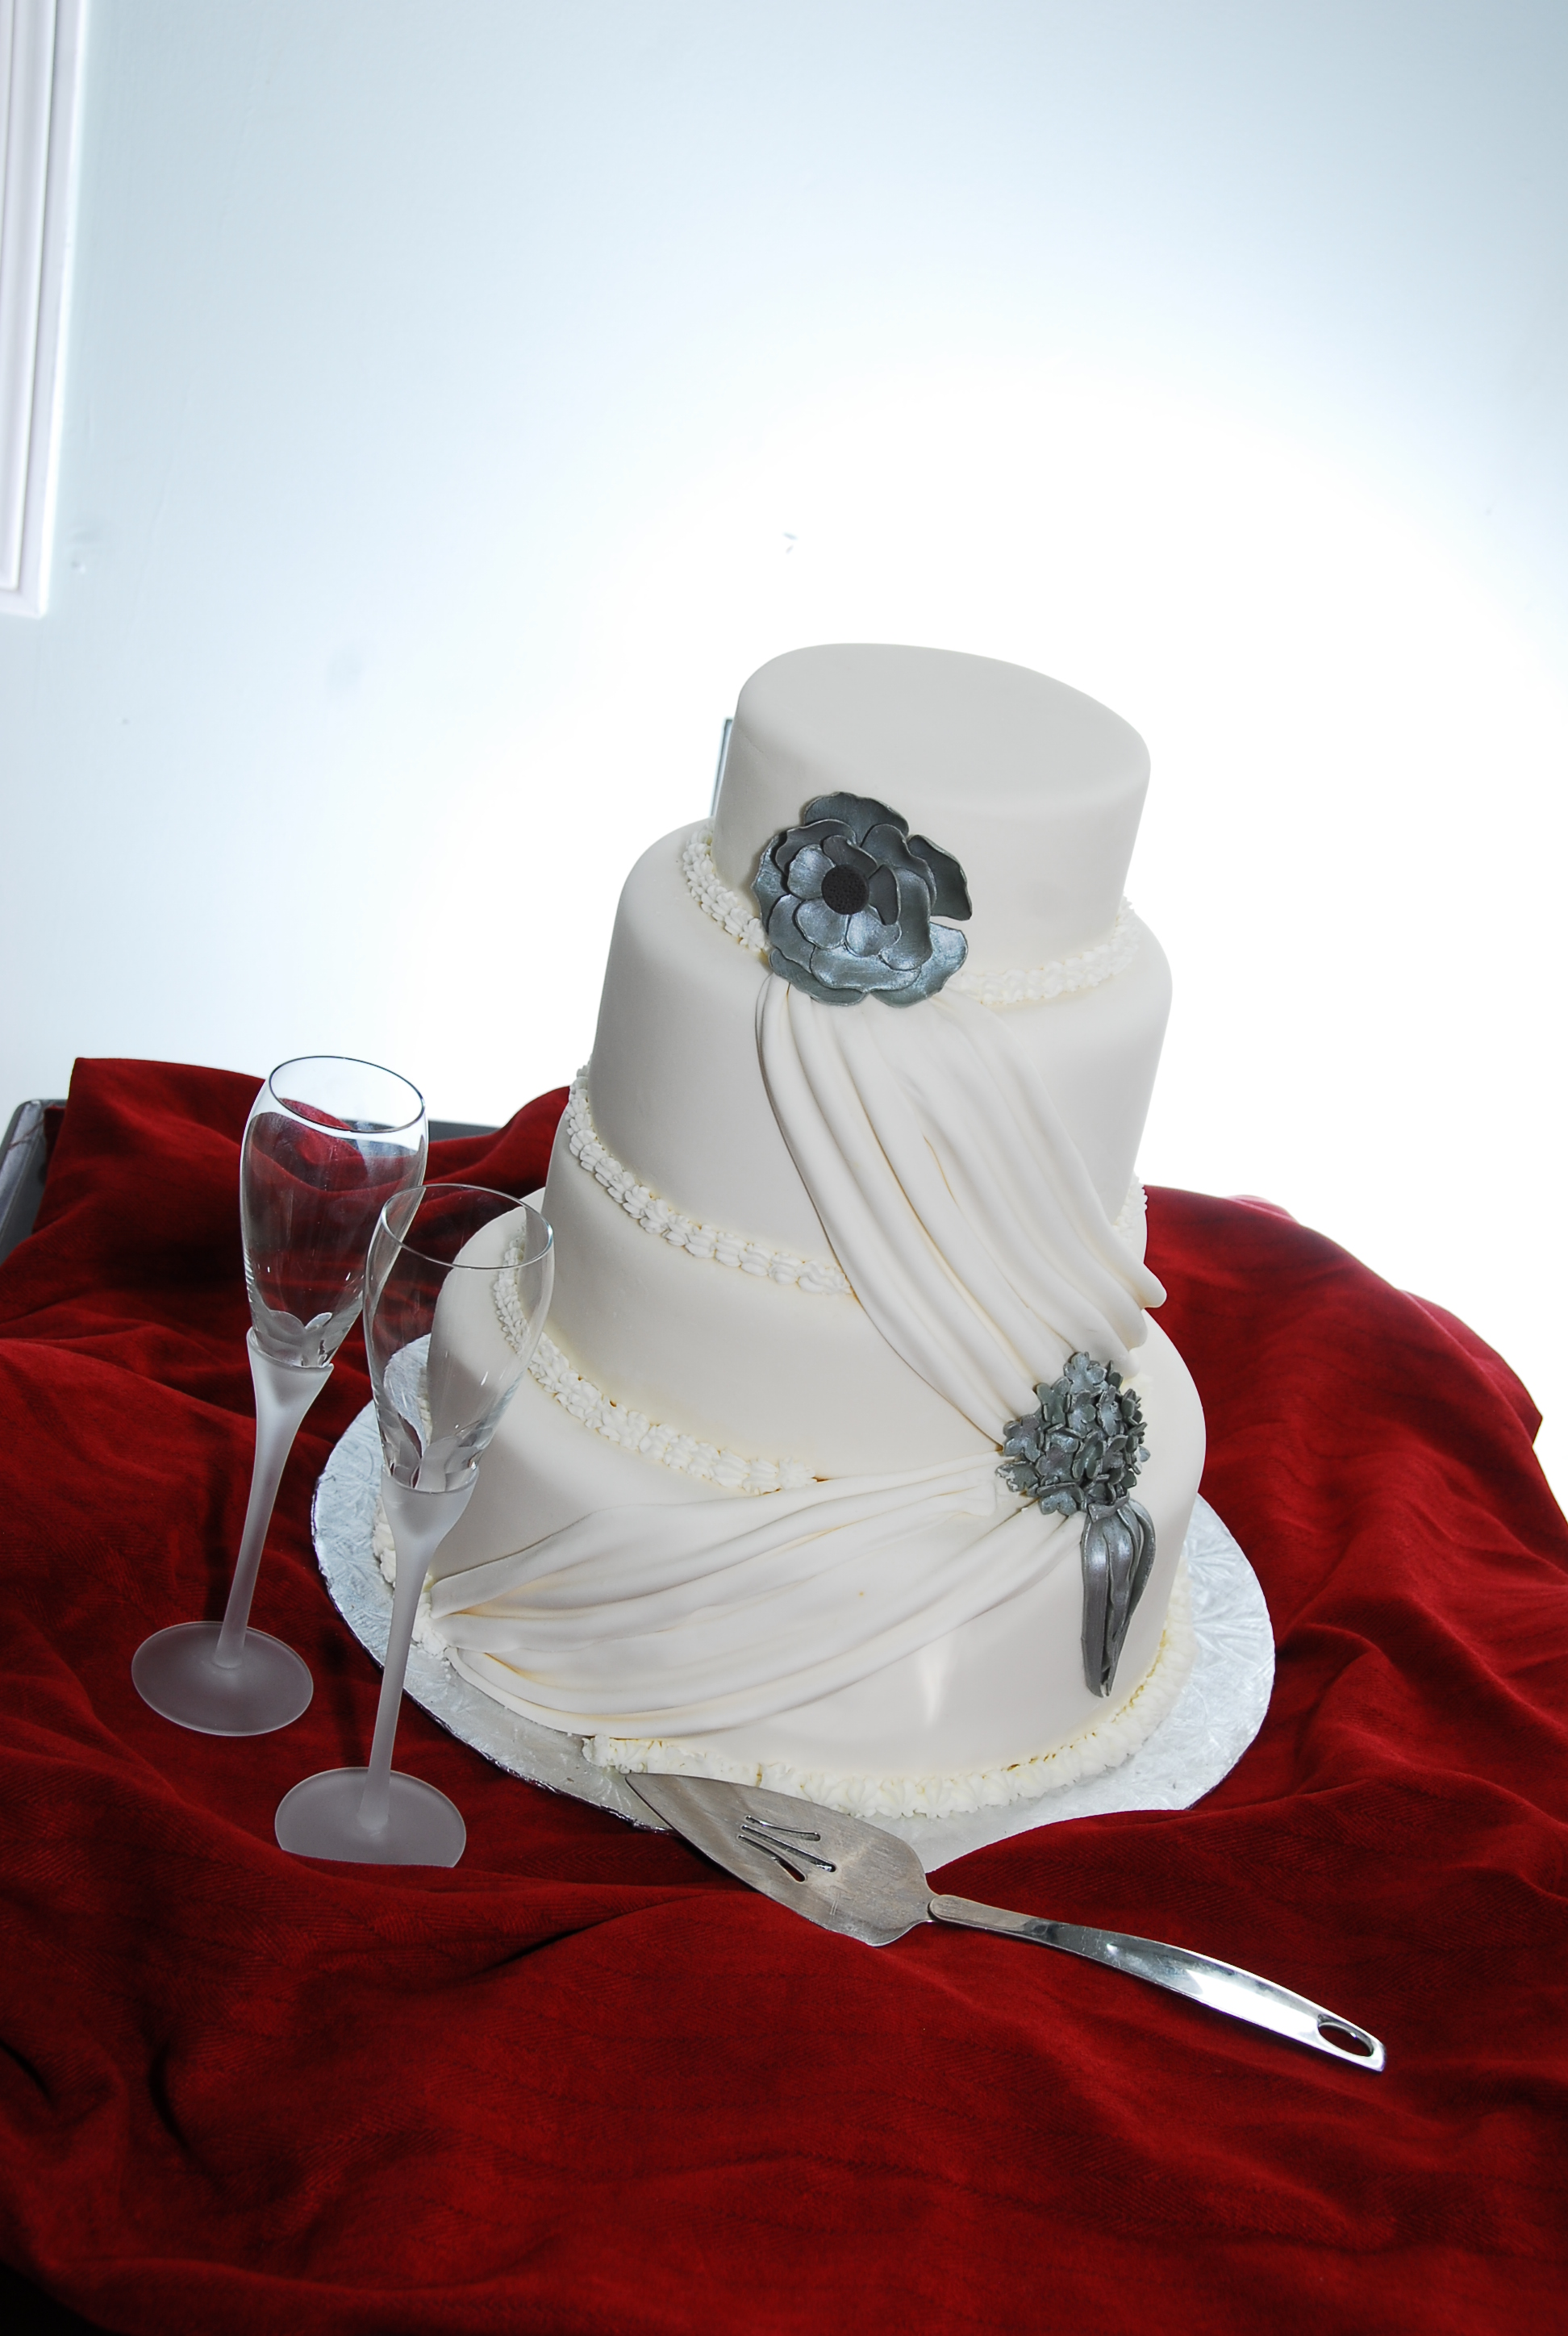 Wedding/Party Cakes - Dsc 0488